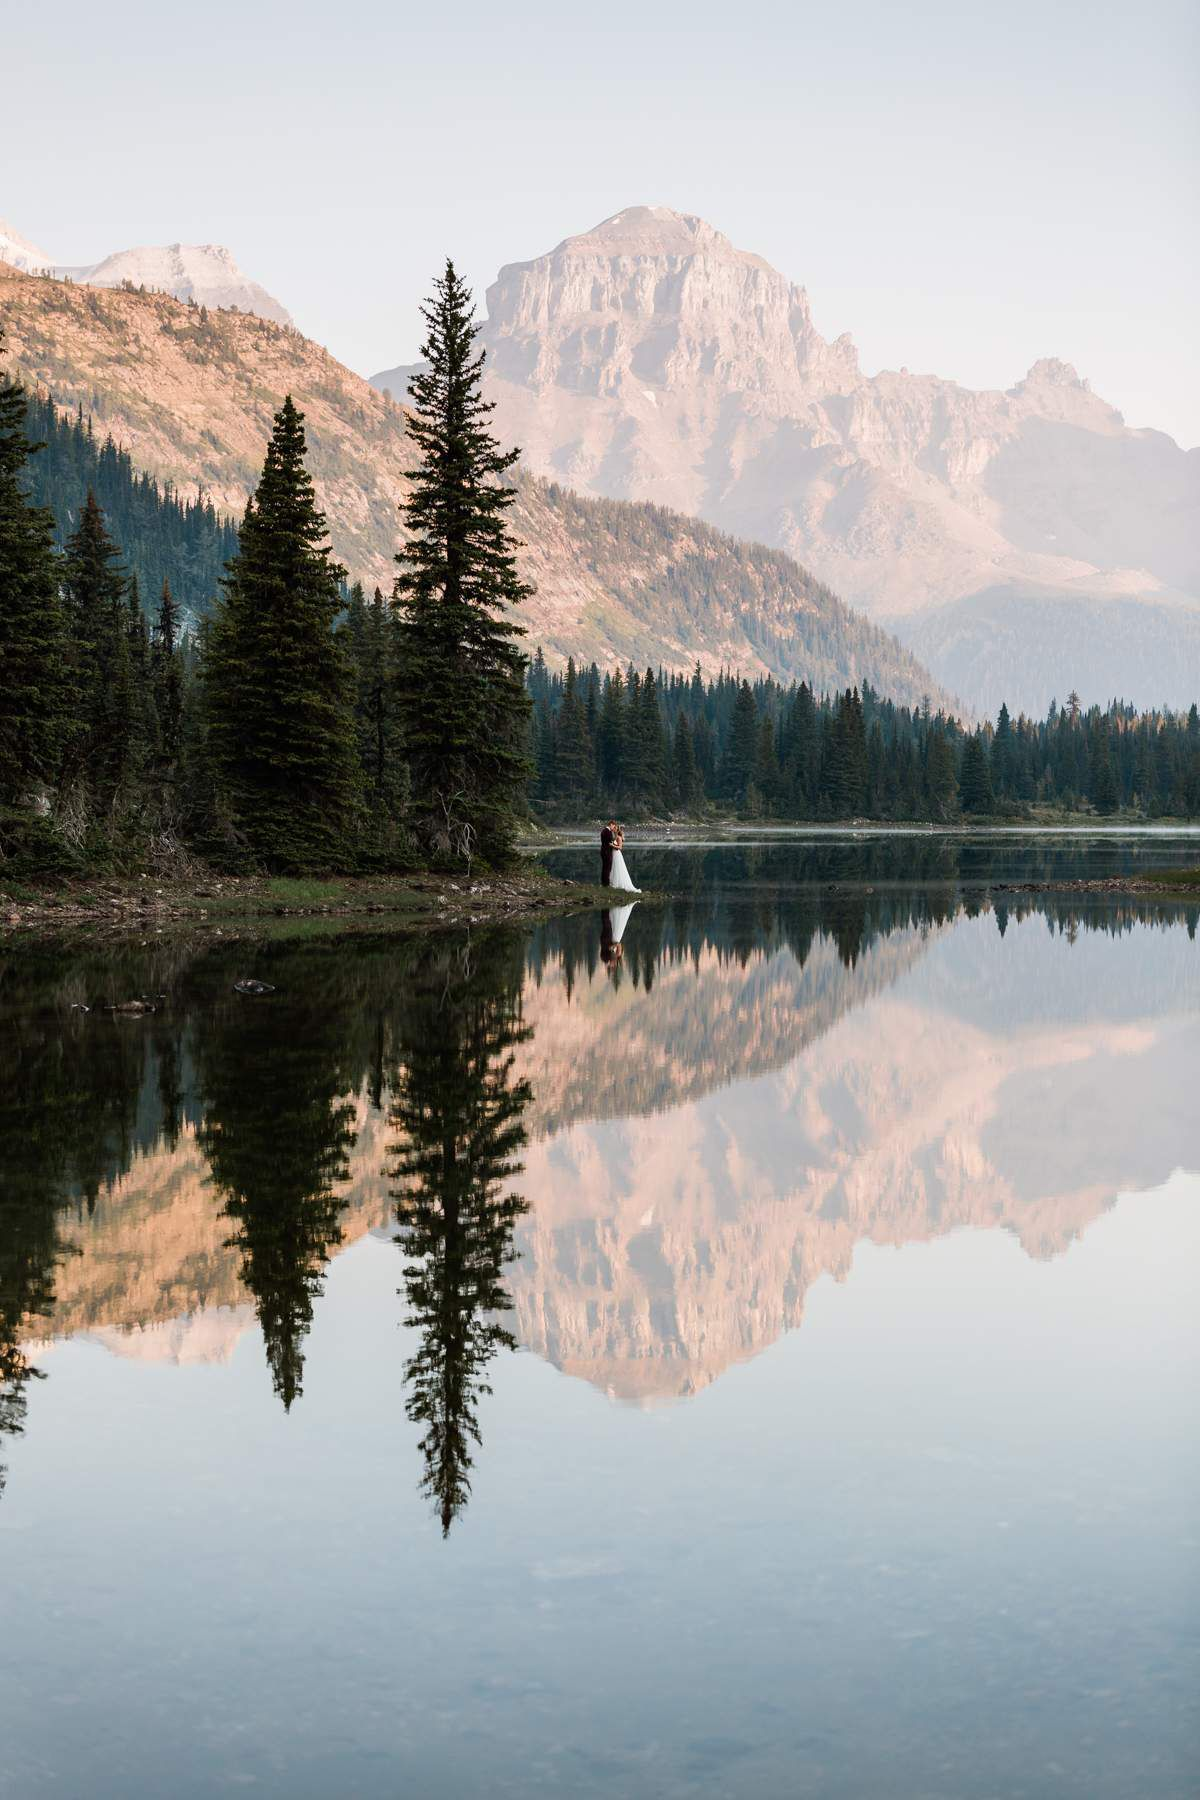 The Film & Forest team around Afton Flynn had the chance to capture this Banff wedding including a helicopter, a lovely couple and amazing places. These photos are memorable, and we are happy to share them with you! || Image by Film & Forest